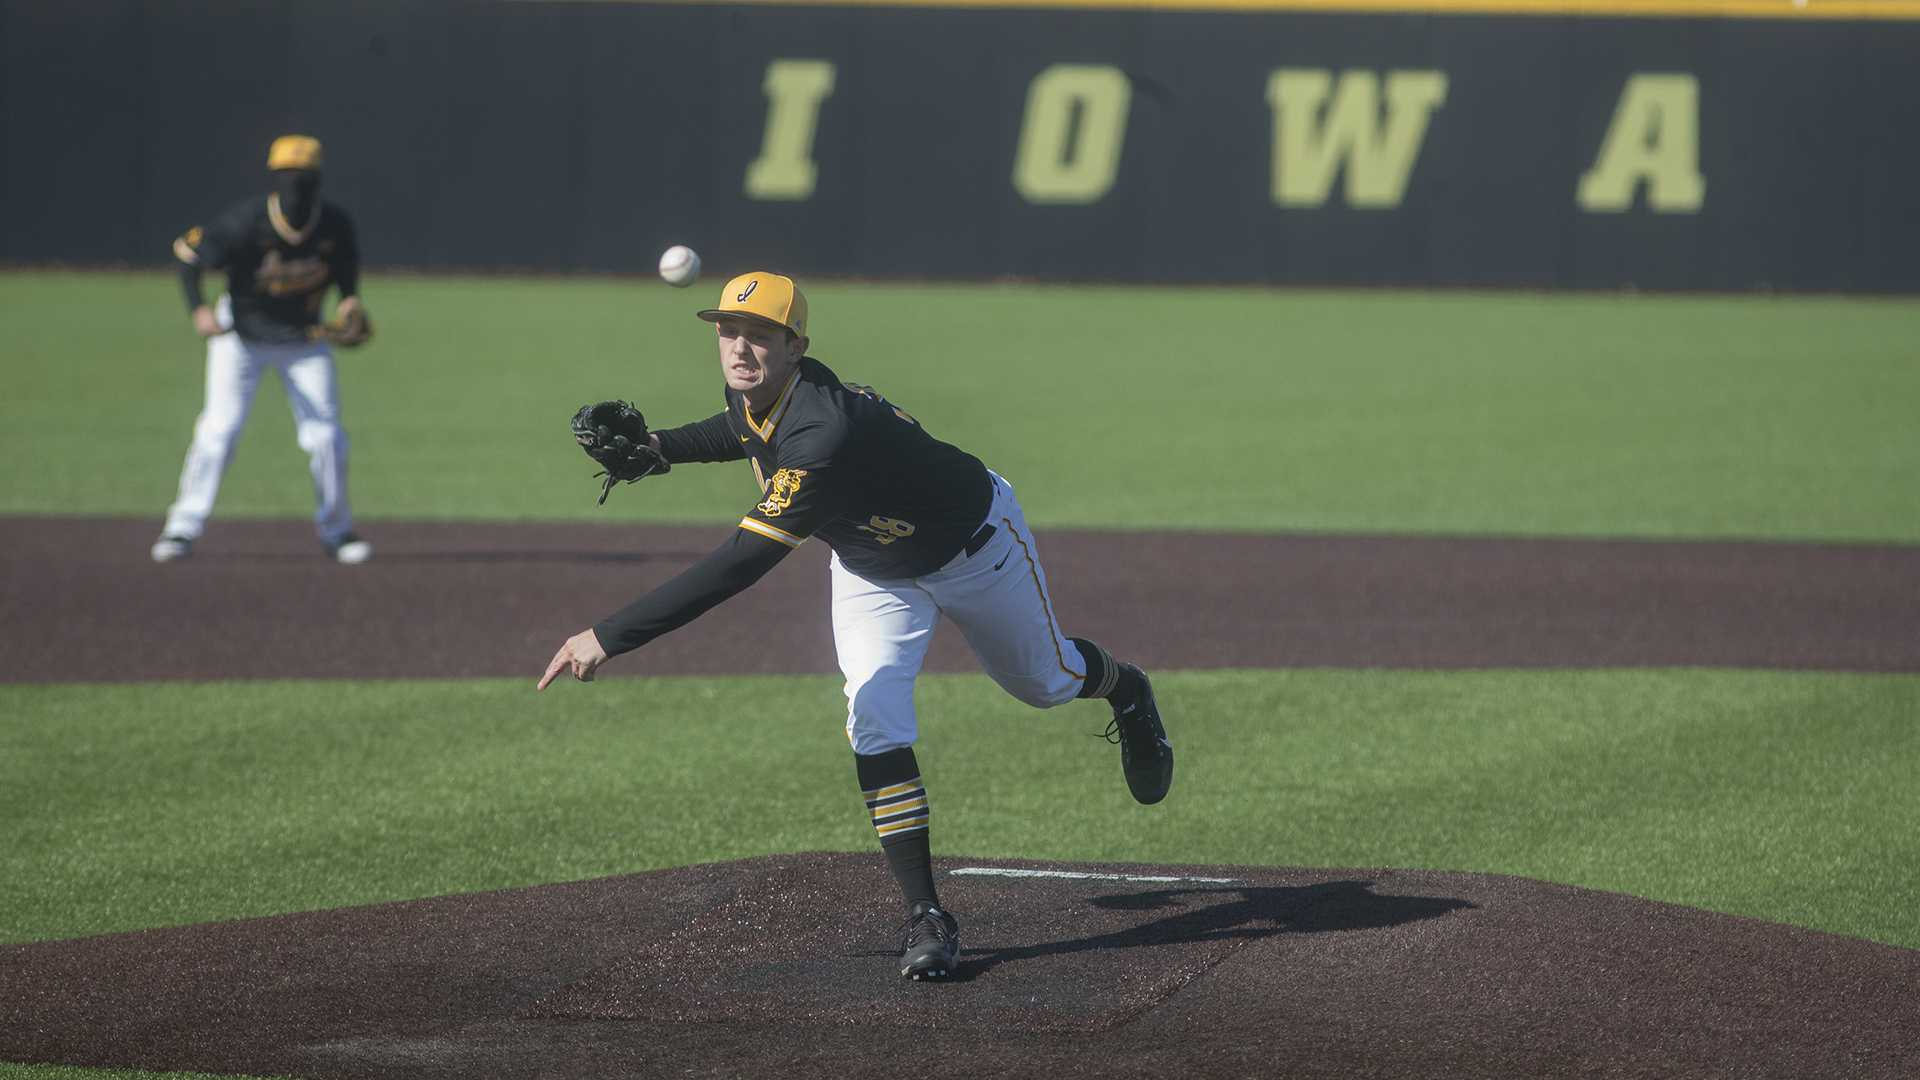 Iowa baseball hopes to maintain strong pitching in midweek game